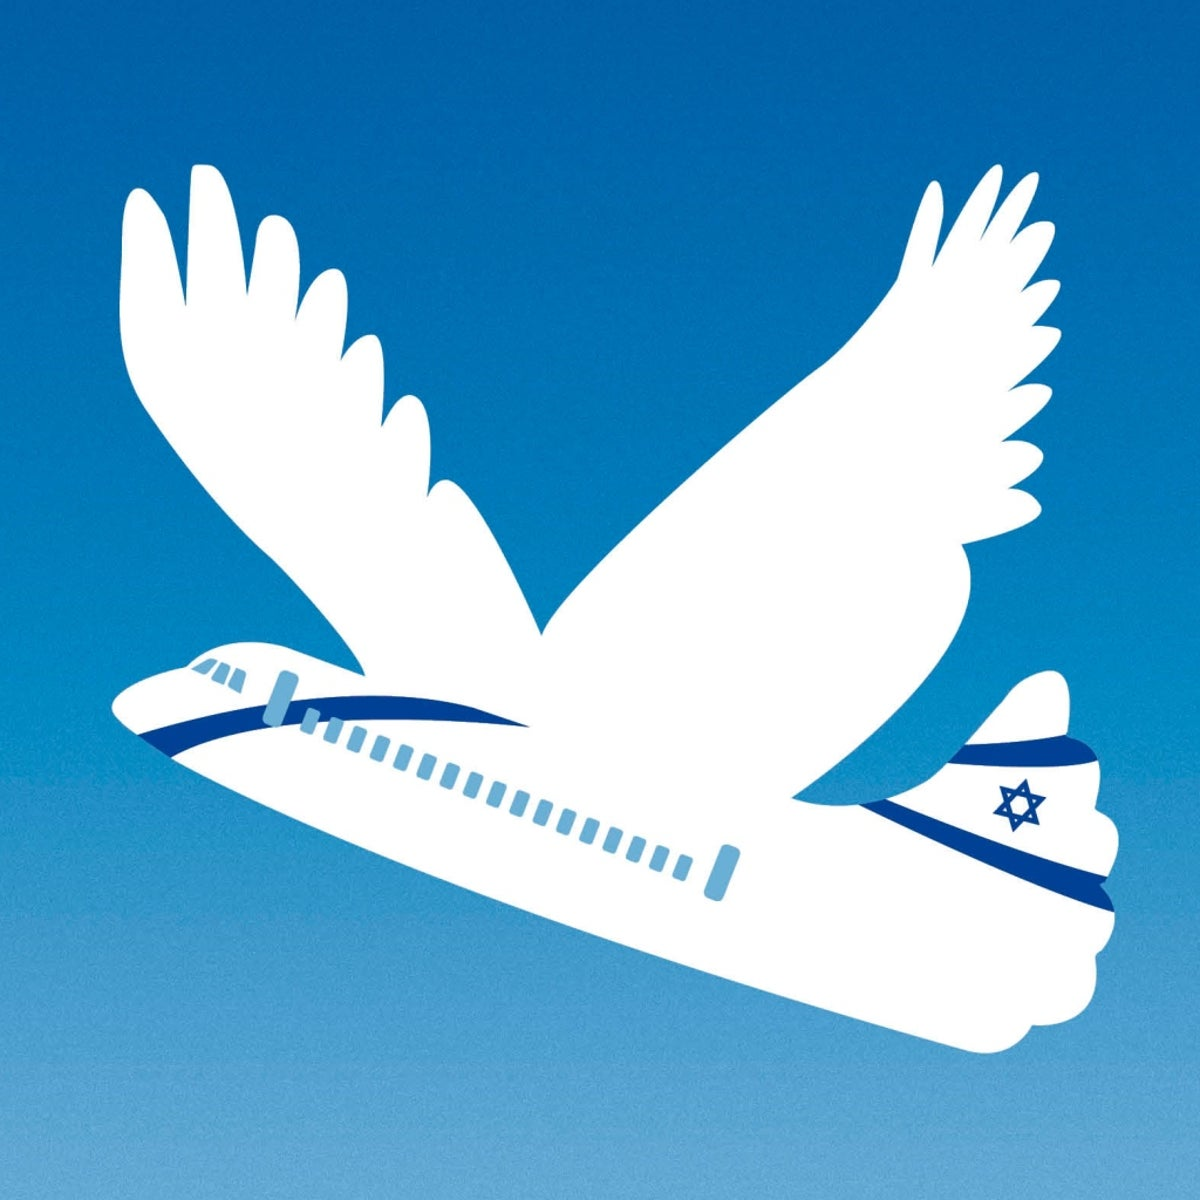 An illustration depicting a composite of a white dove and an El-Al plane taking off.